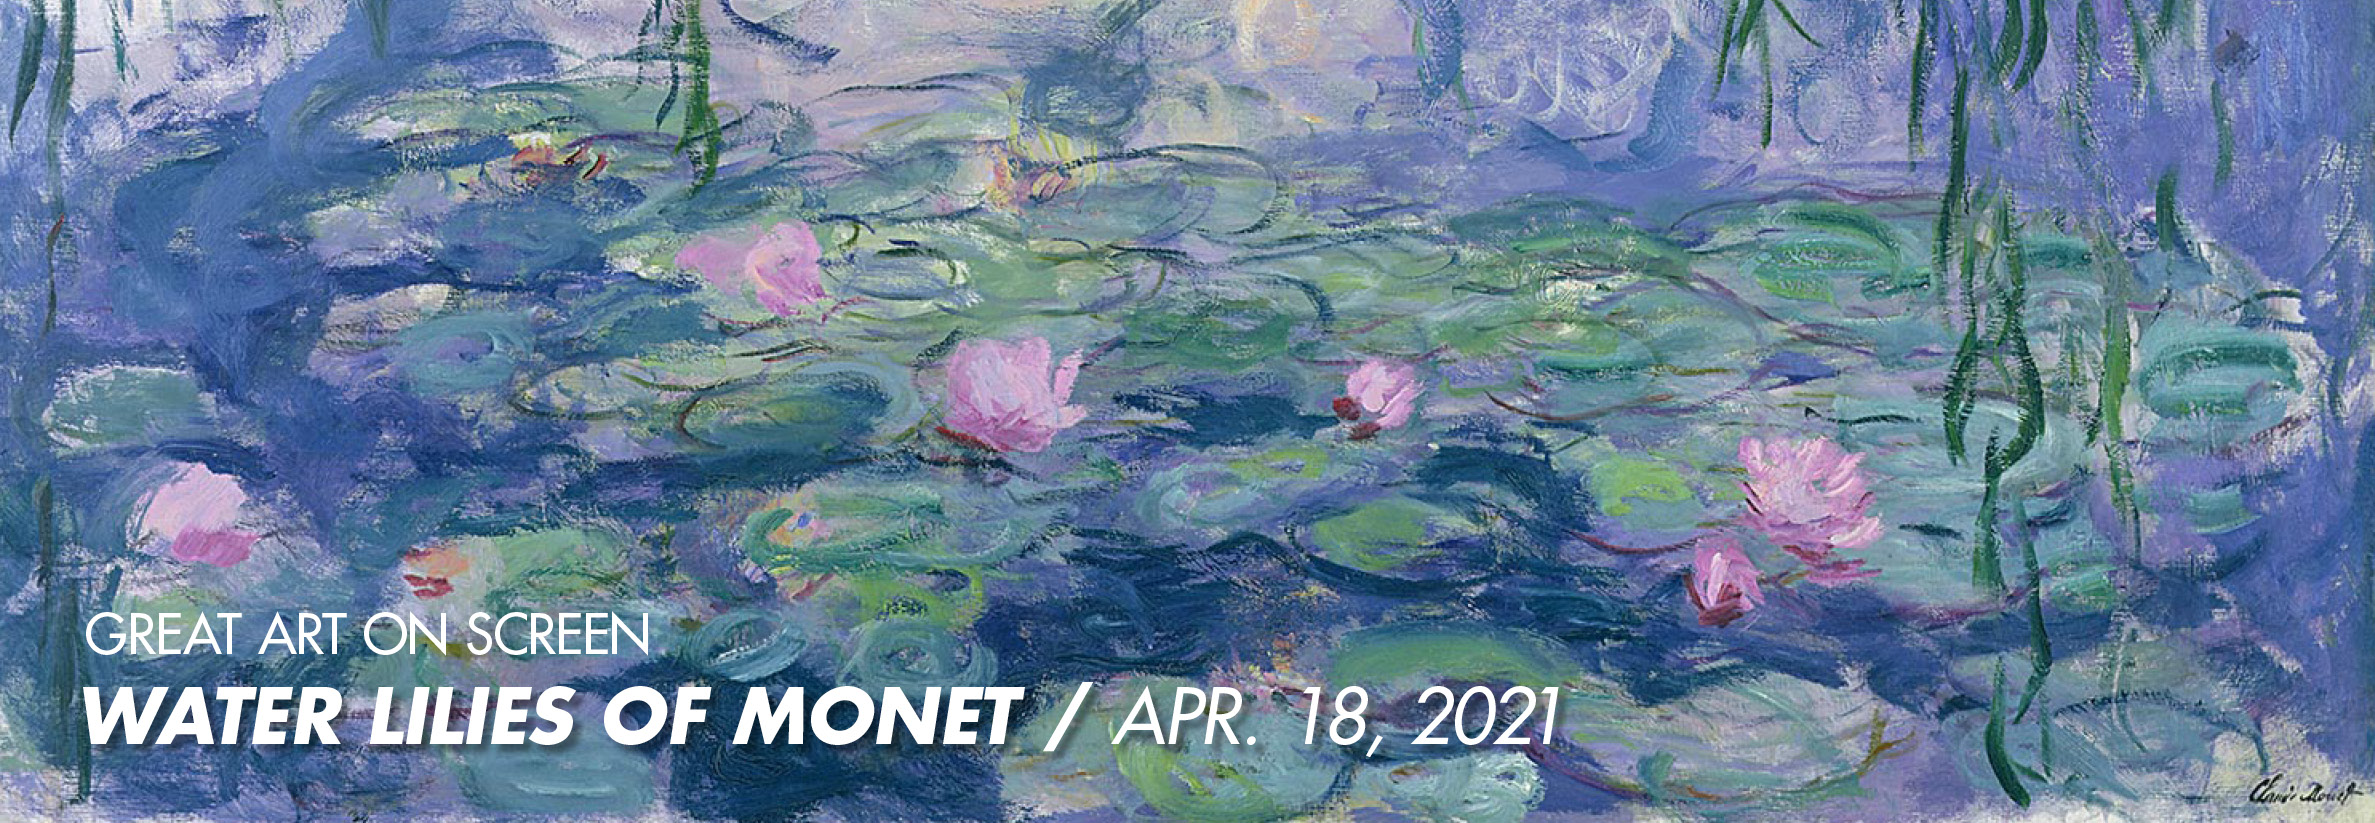 Great Art on Screen: Water Lilies of Monet, April 18, 2021 (Image: Detail of Monet's Water Lilies, ca. 1910s)